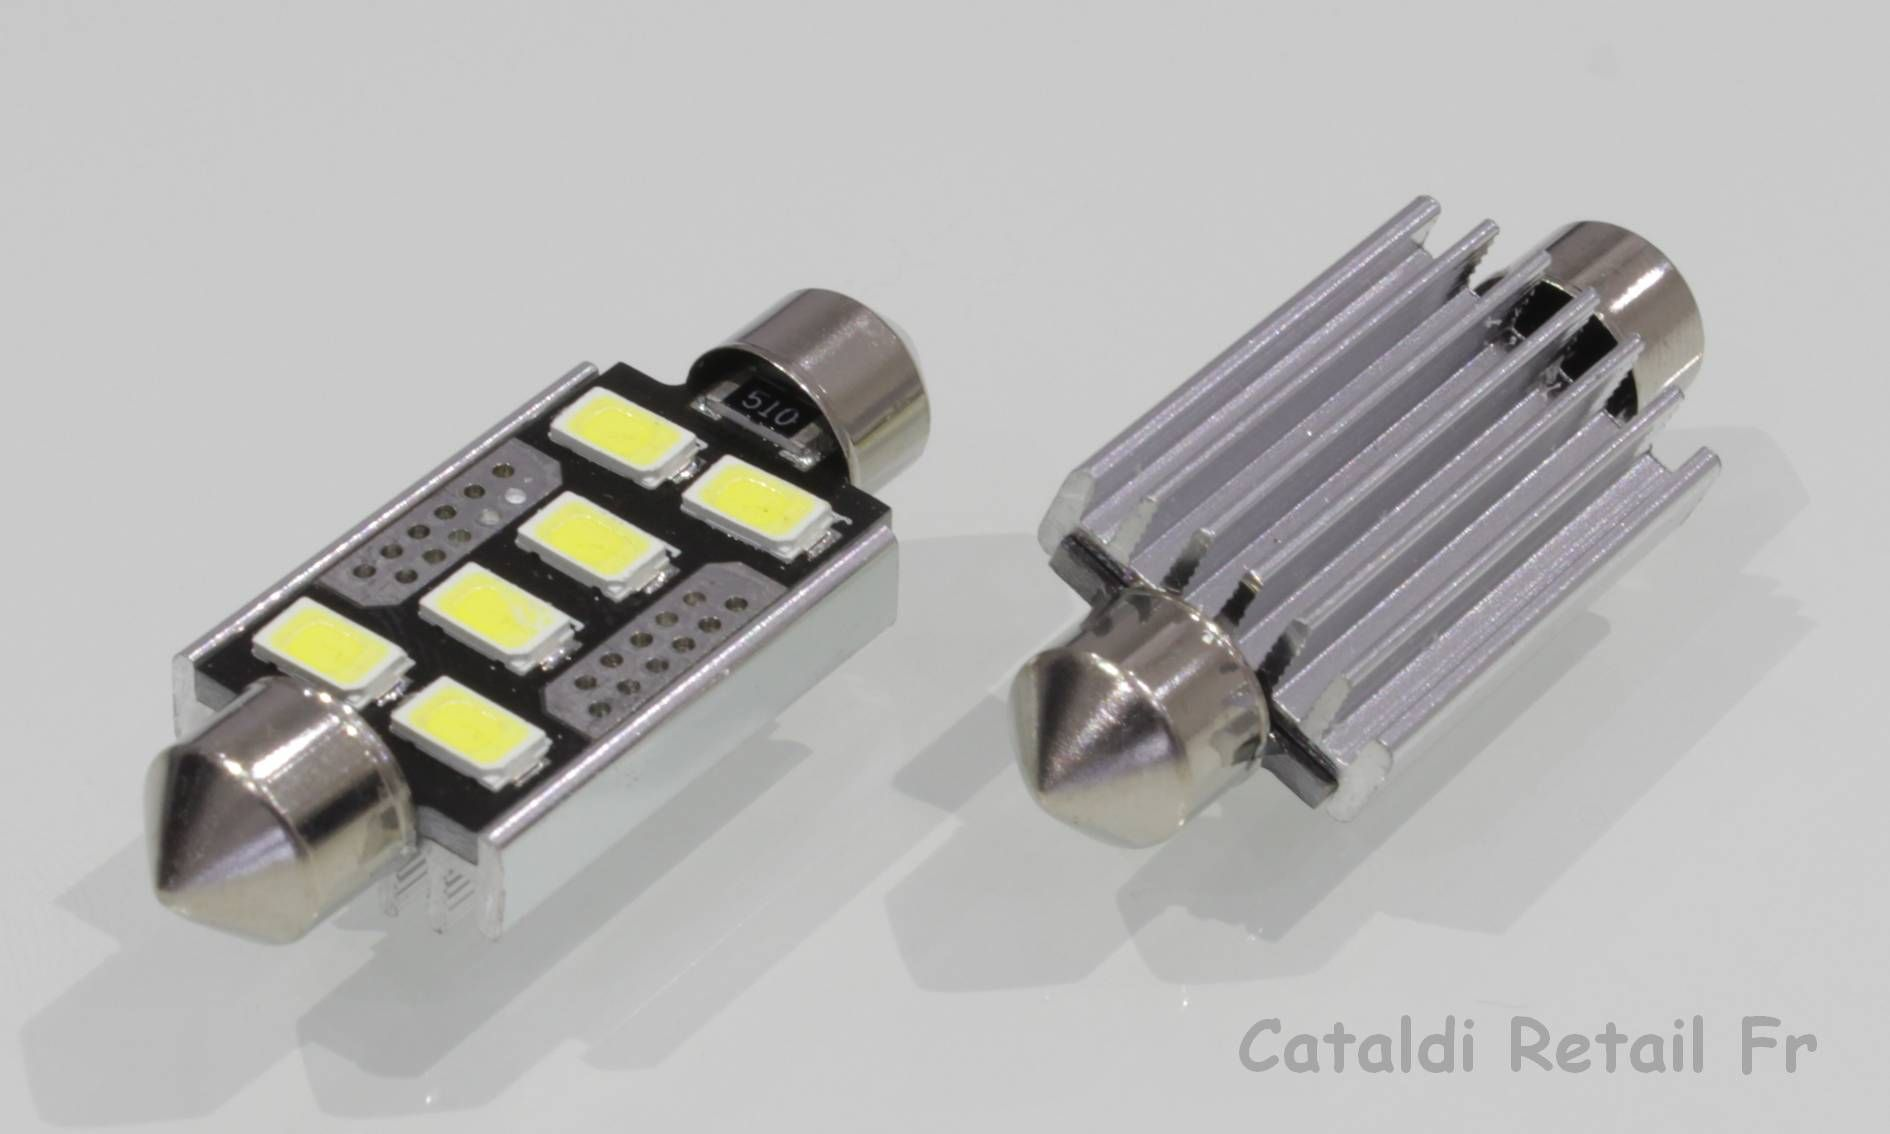 2 x navettes led c5w 6 smd 41 mm canbus anti erreur odb blanc pur france ebay. Black Bedroom Furniture Sets. Home Design Ideas